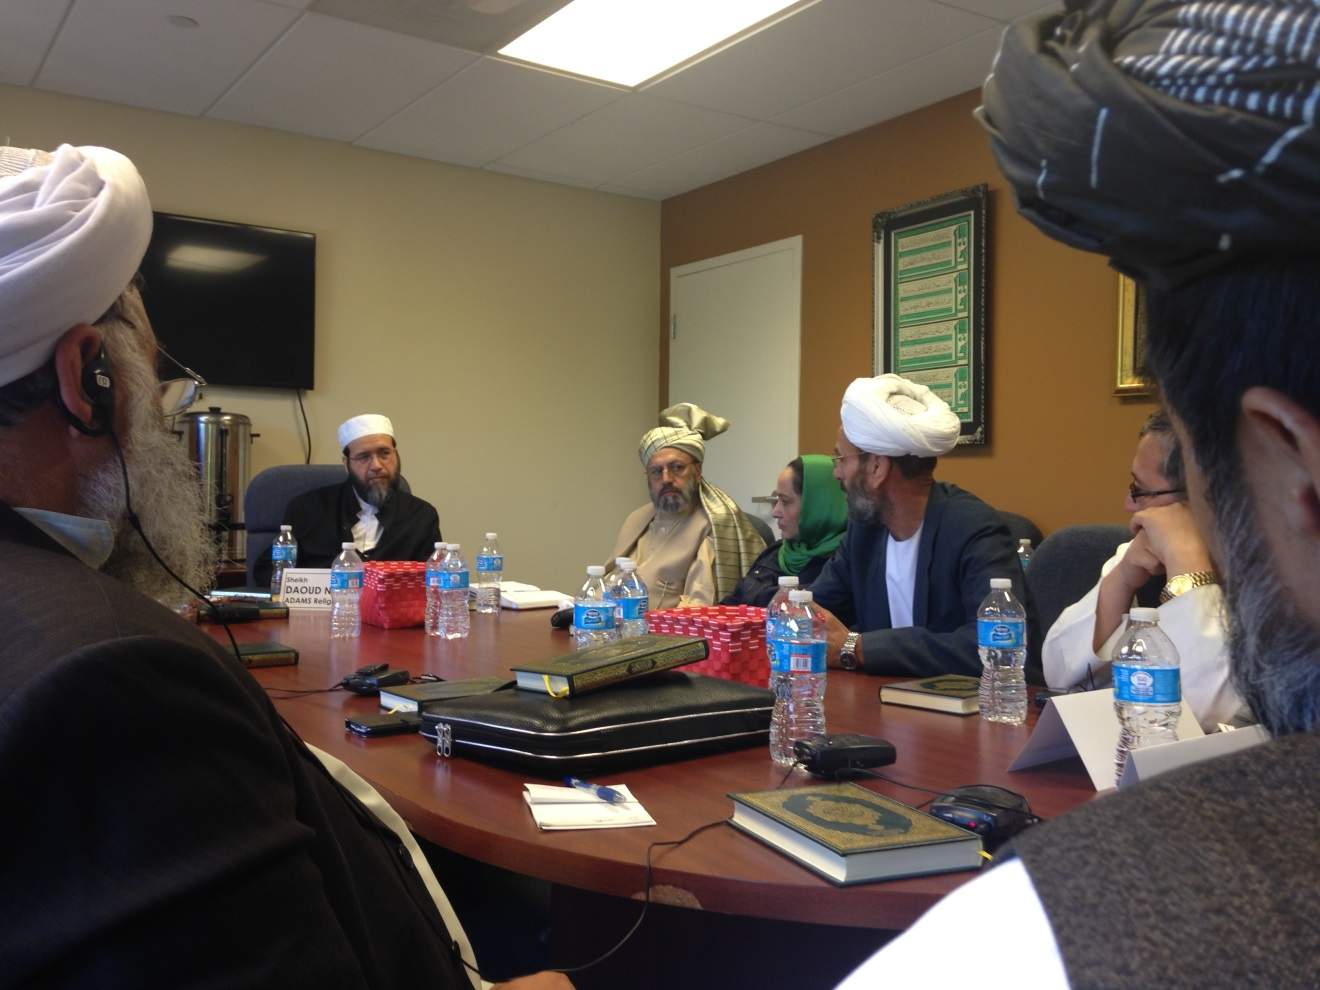 Afghan Traditional Leaders Discover America | Meridian Blog